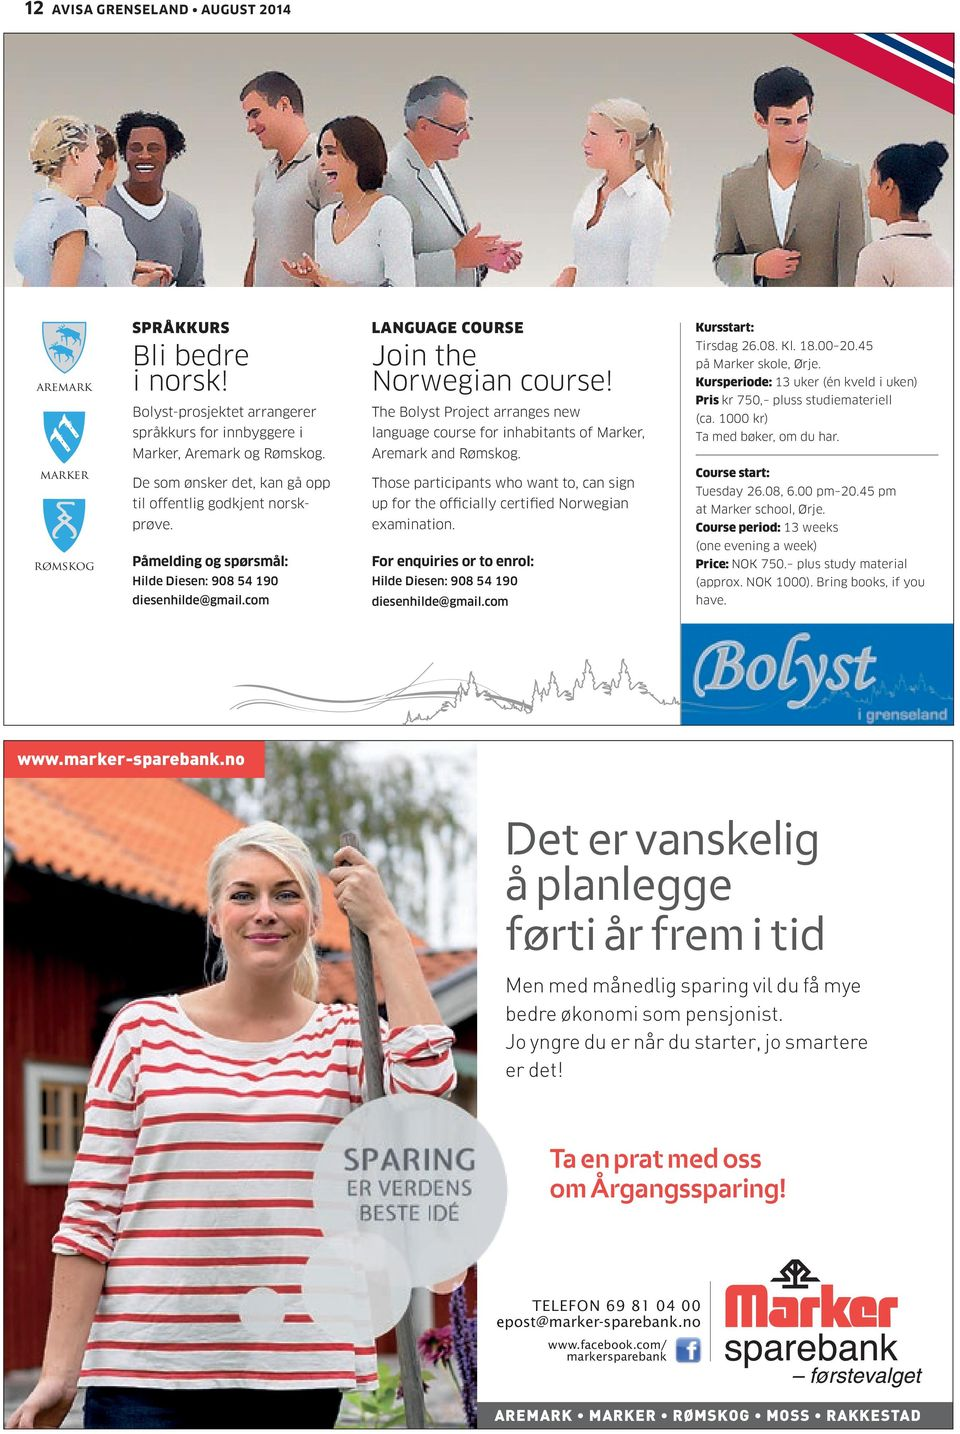 The Bolyst Project arranges new language course for inhabitants of Marker, Aremark and Rømskog. Those participants who want to, can sign up for the officially certified Norwegian examination.